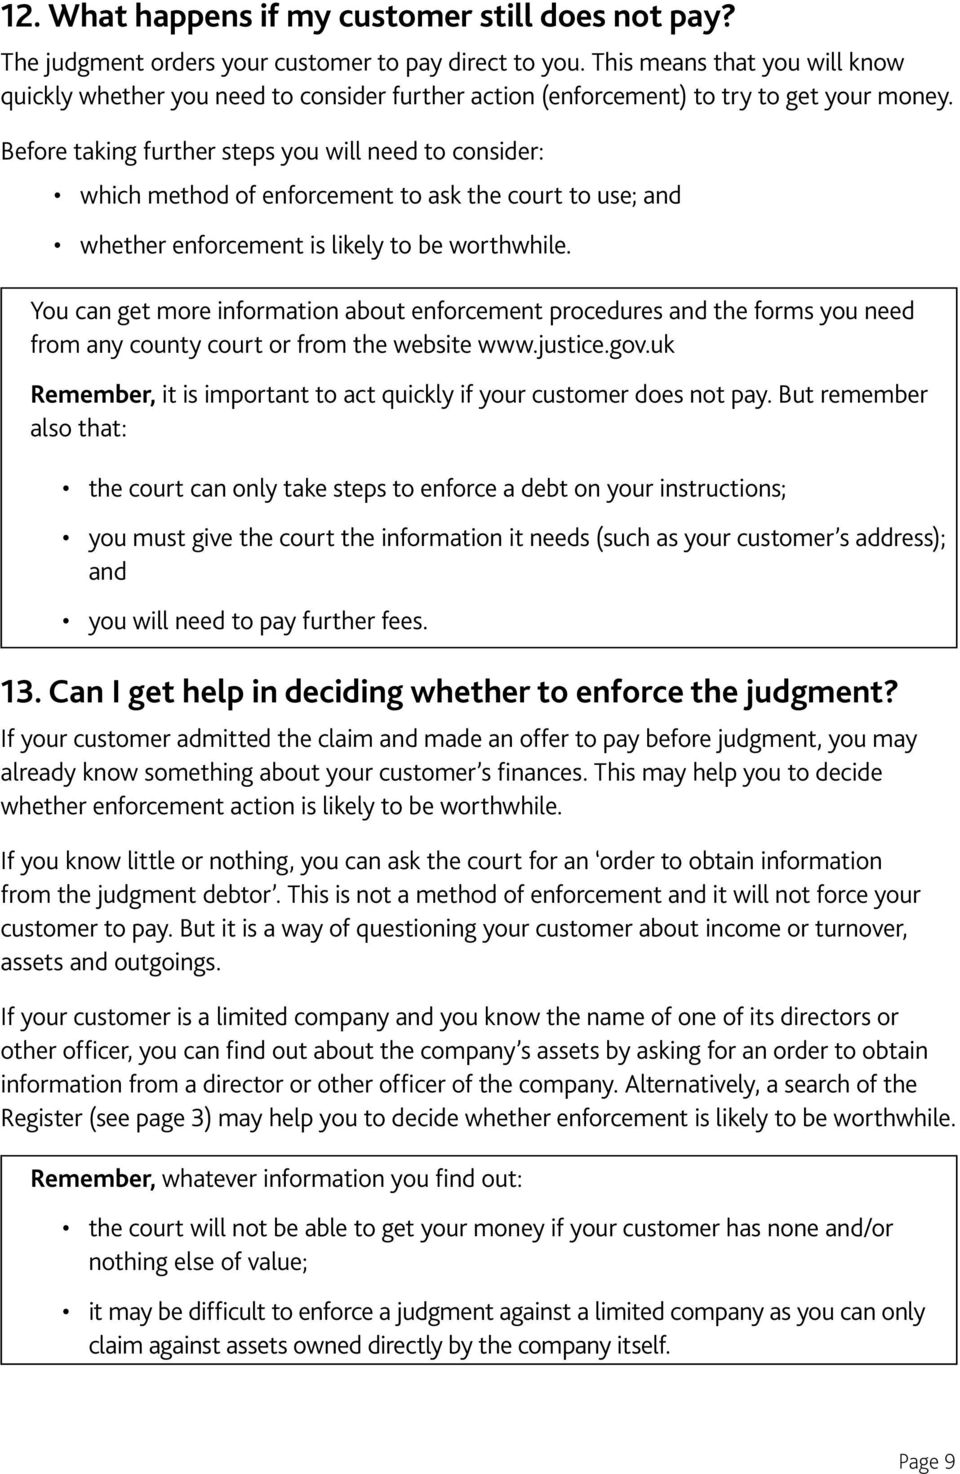 Before taking further steps you will need to consider: which method of enforcement to ask the court to use; and whether enforcement is likely to be worthwhile.